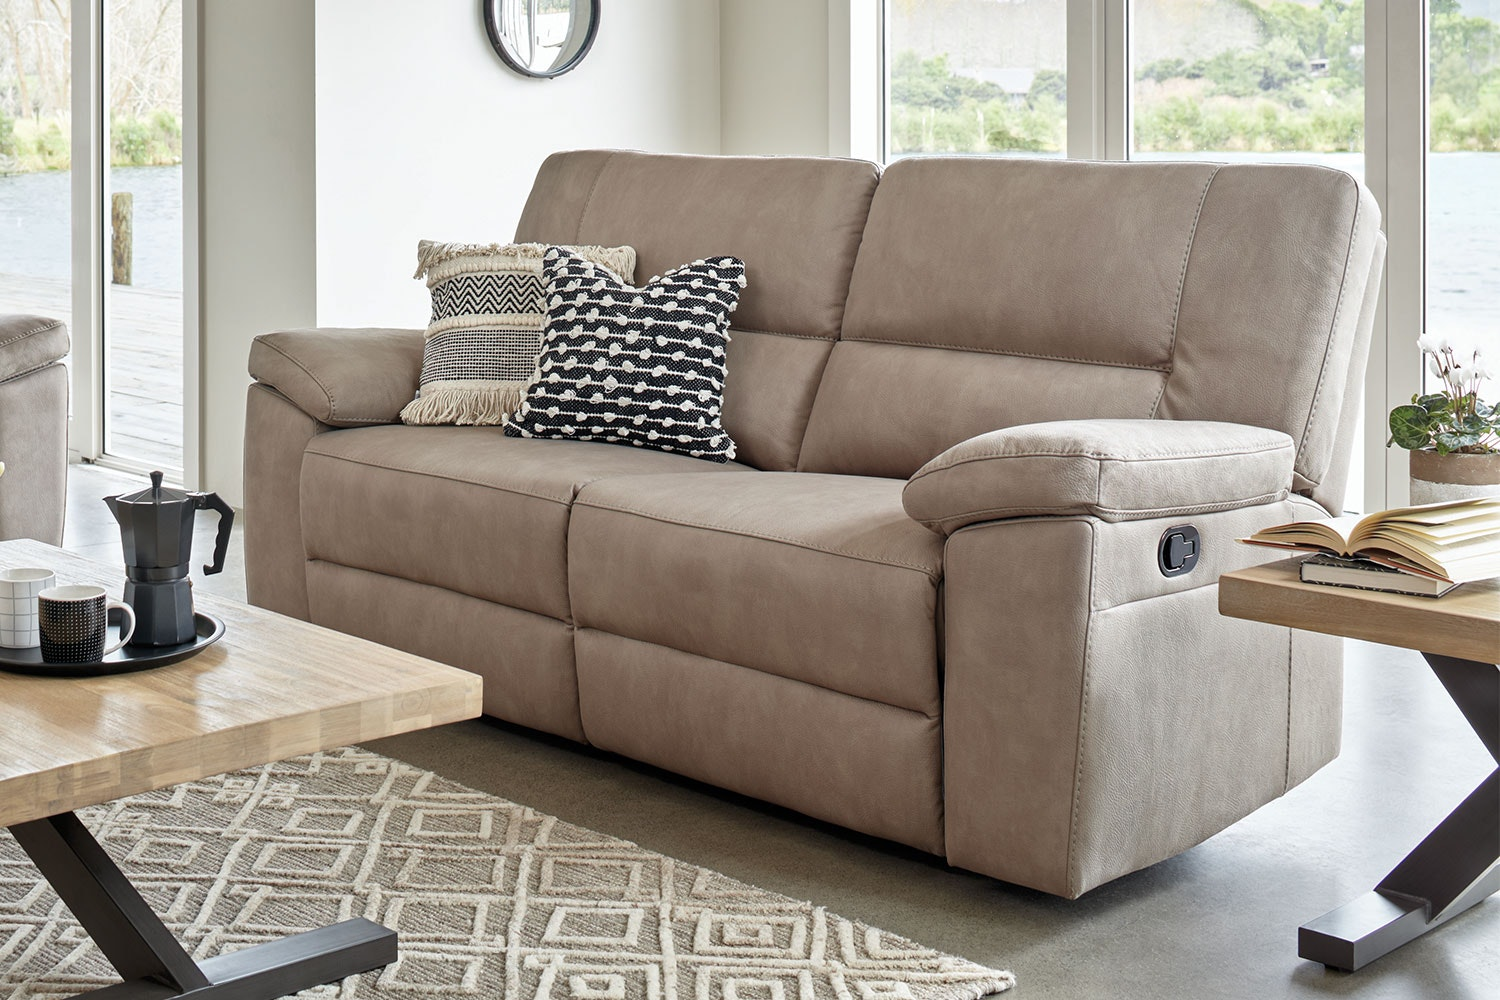 Stone Jenson 2.5 Seater Fabric Sofa by Synargy